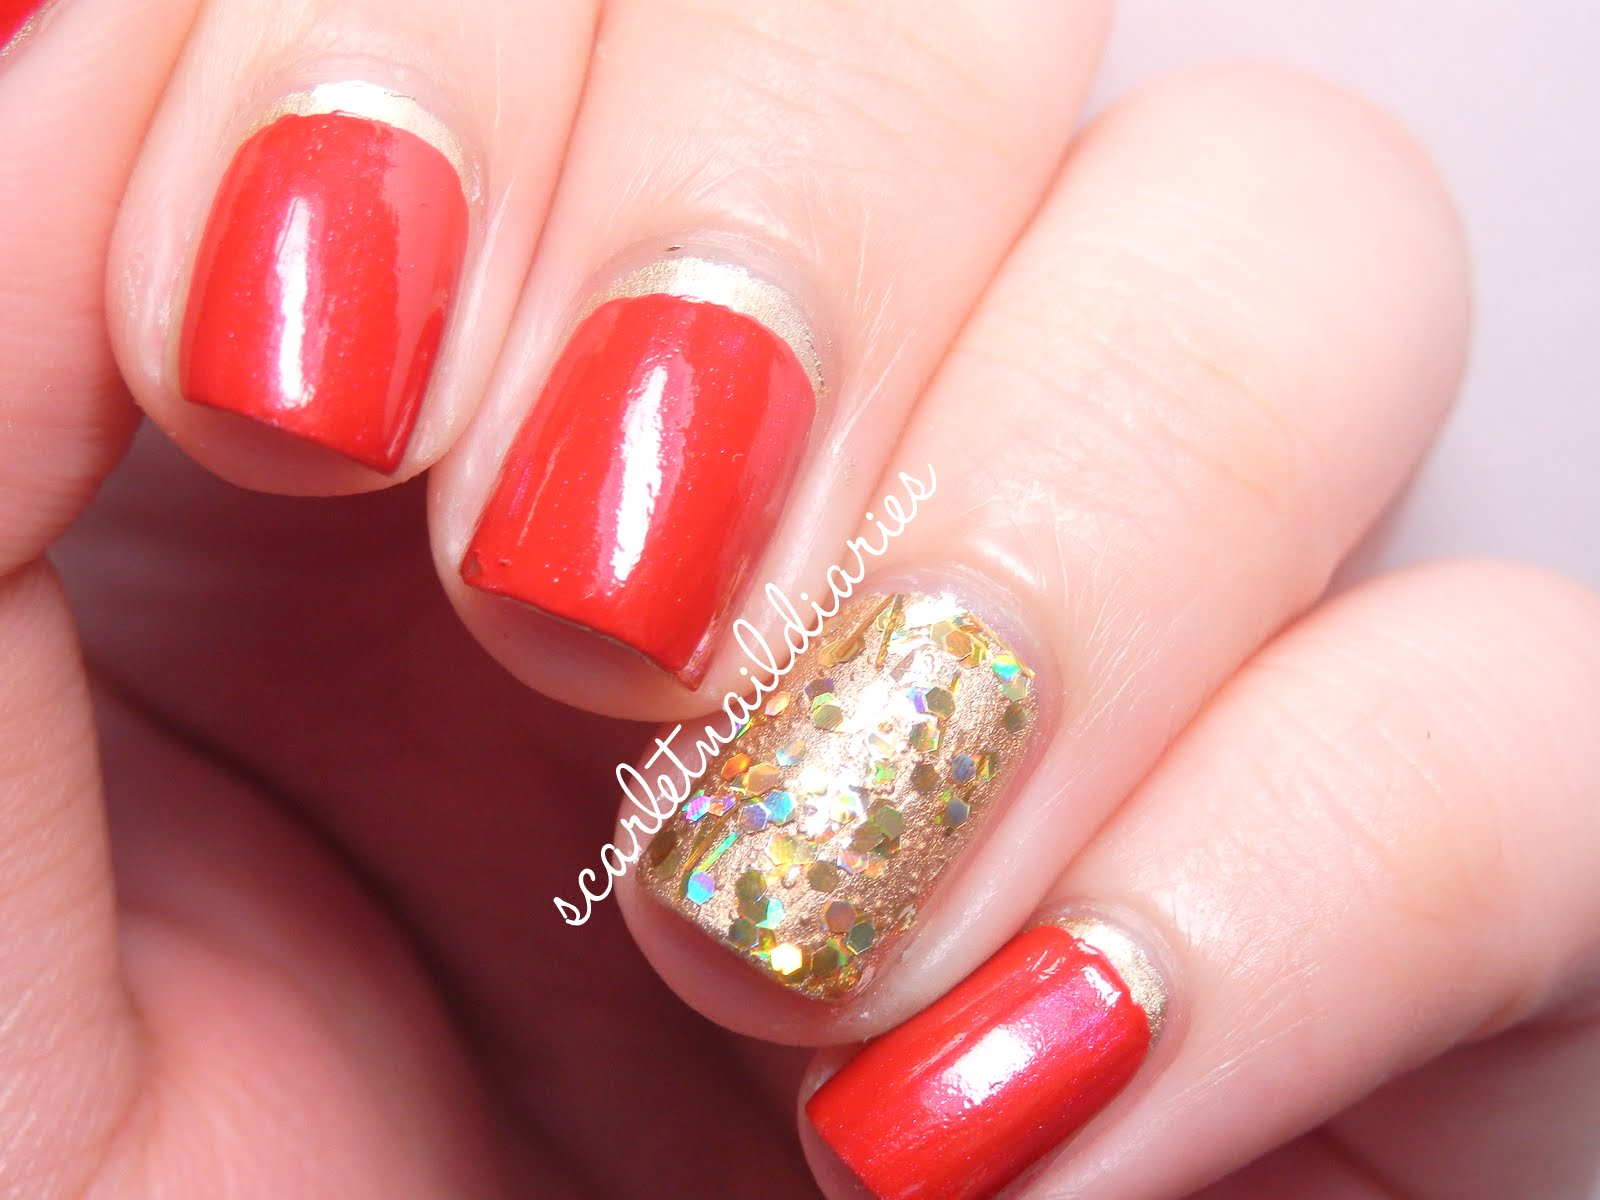 The Scarlet Nail Diaries: Chinese New Year Nails!